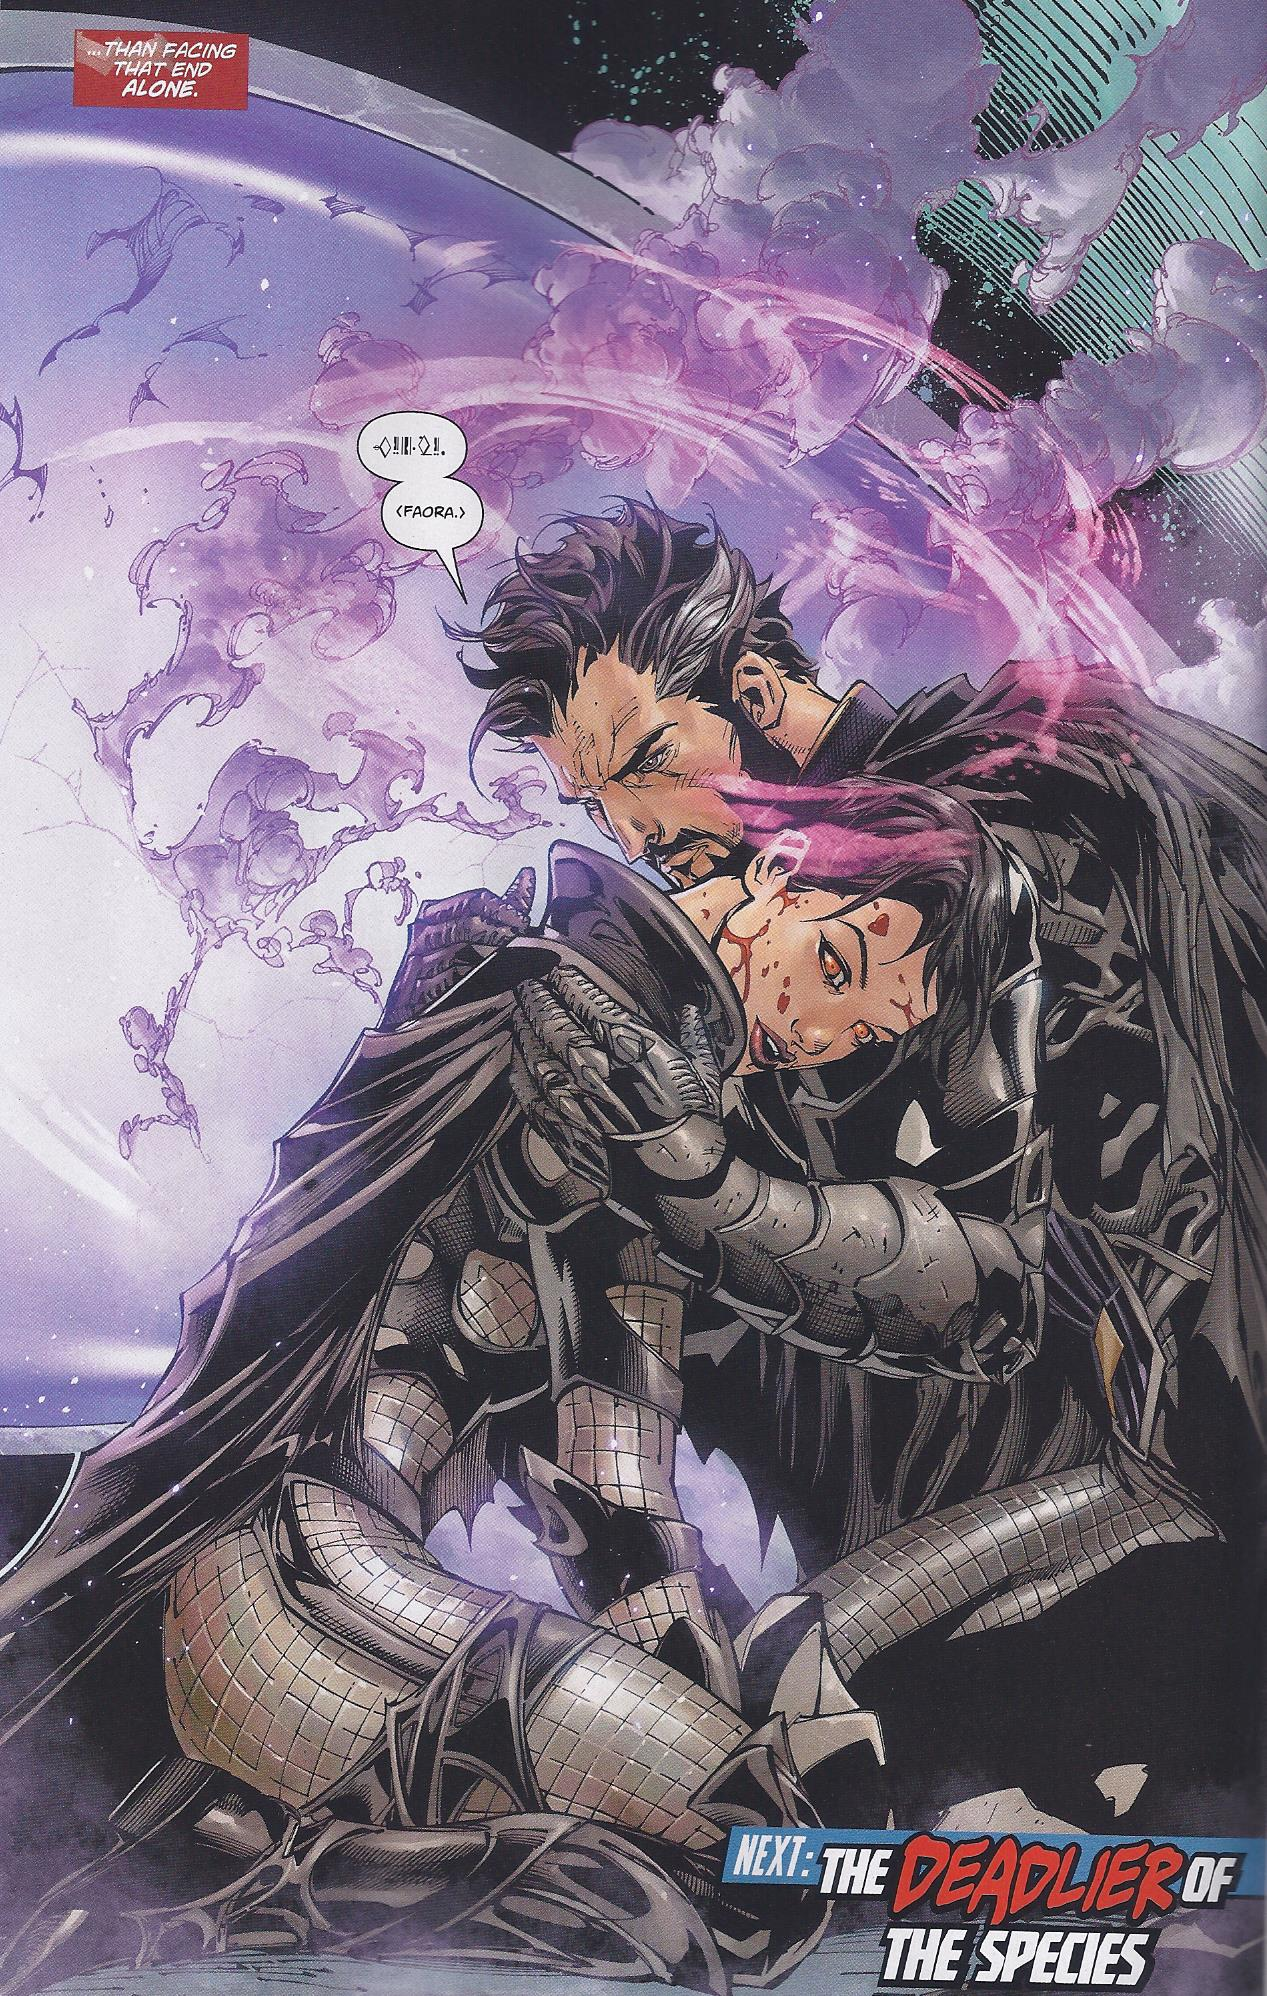 Zod And Faora Son Zod Frees Faora From The